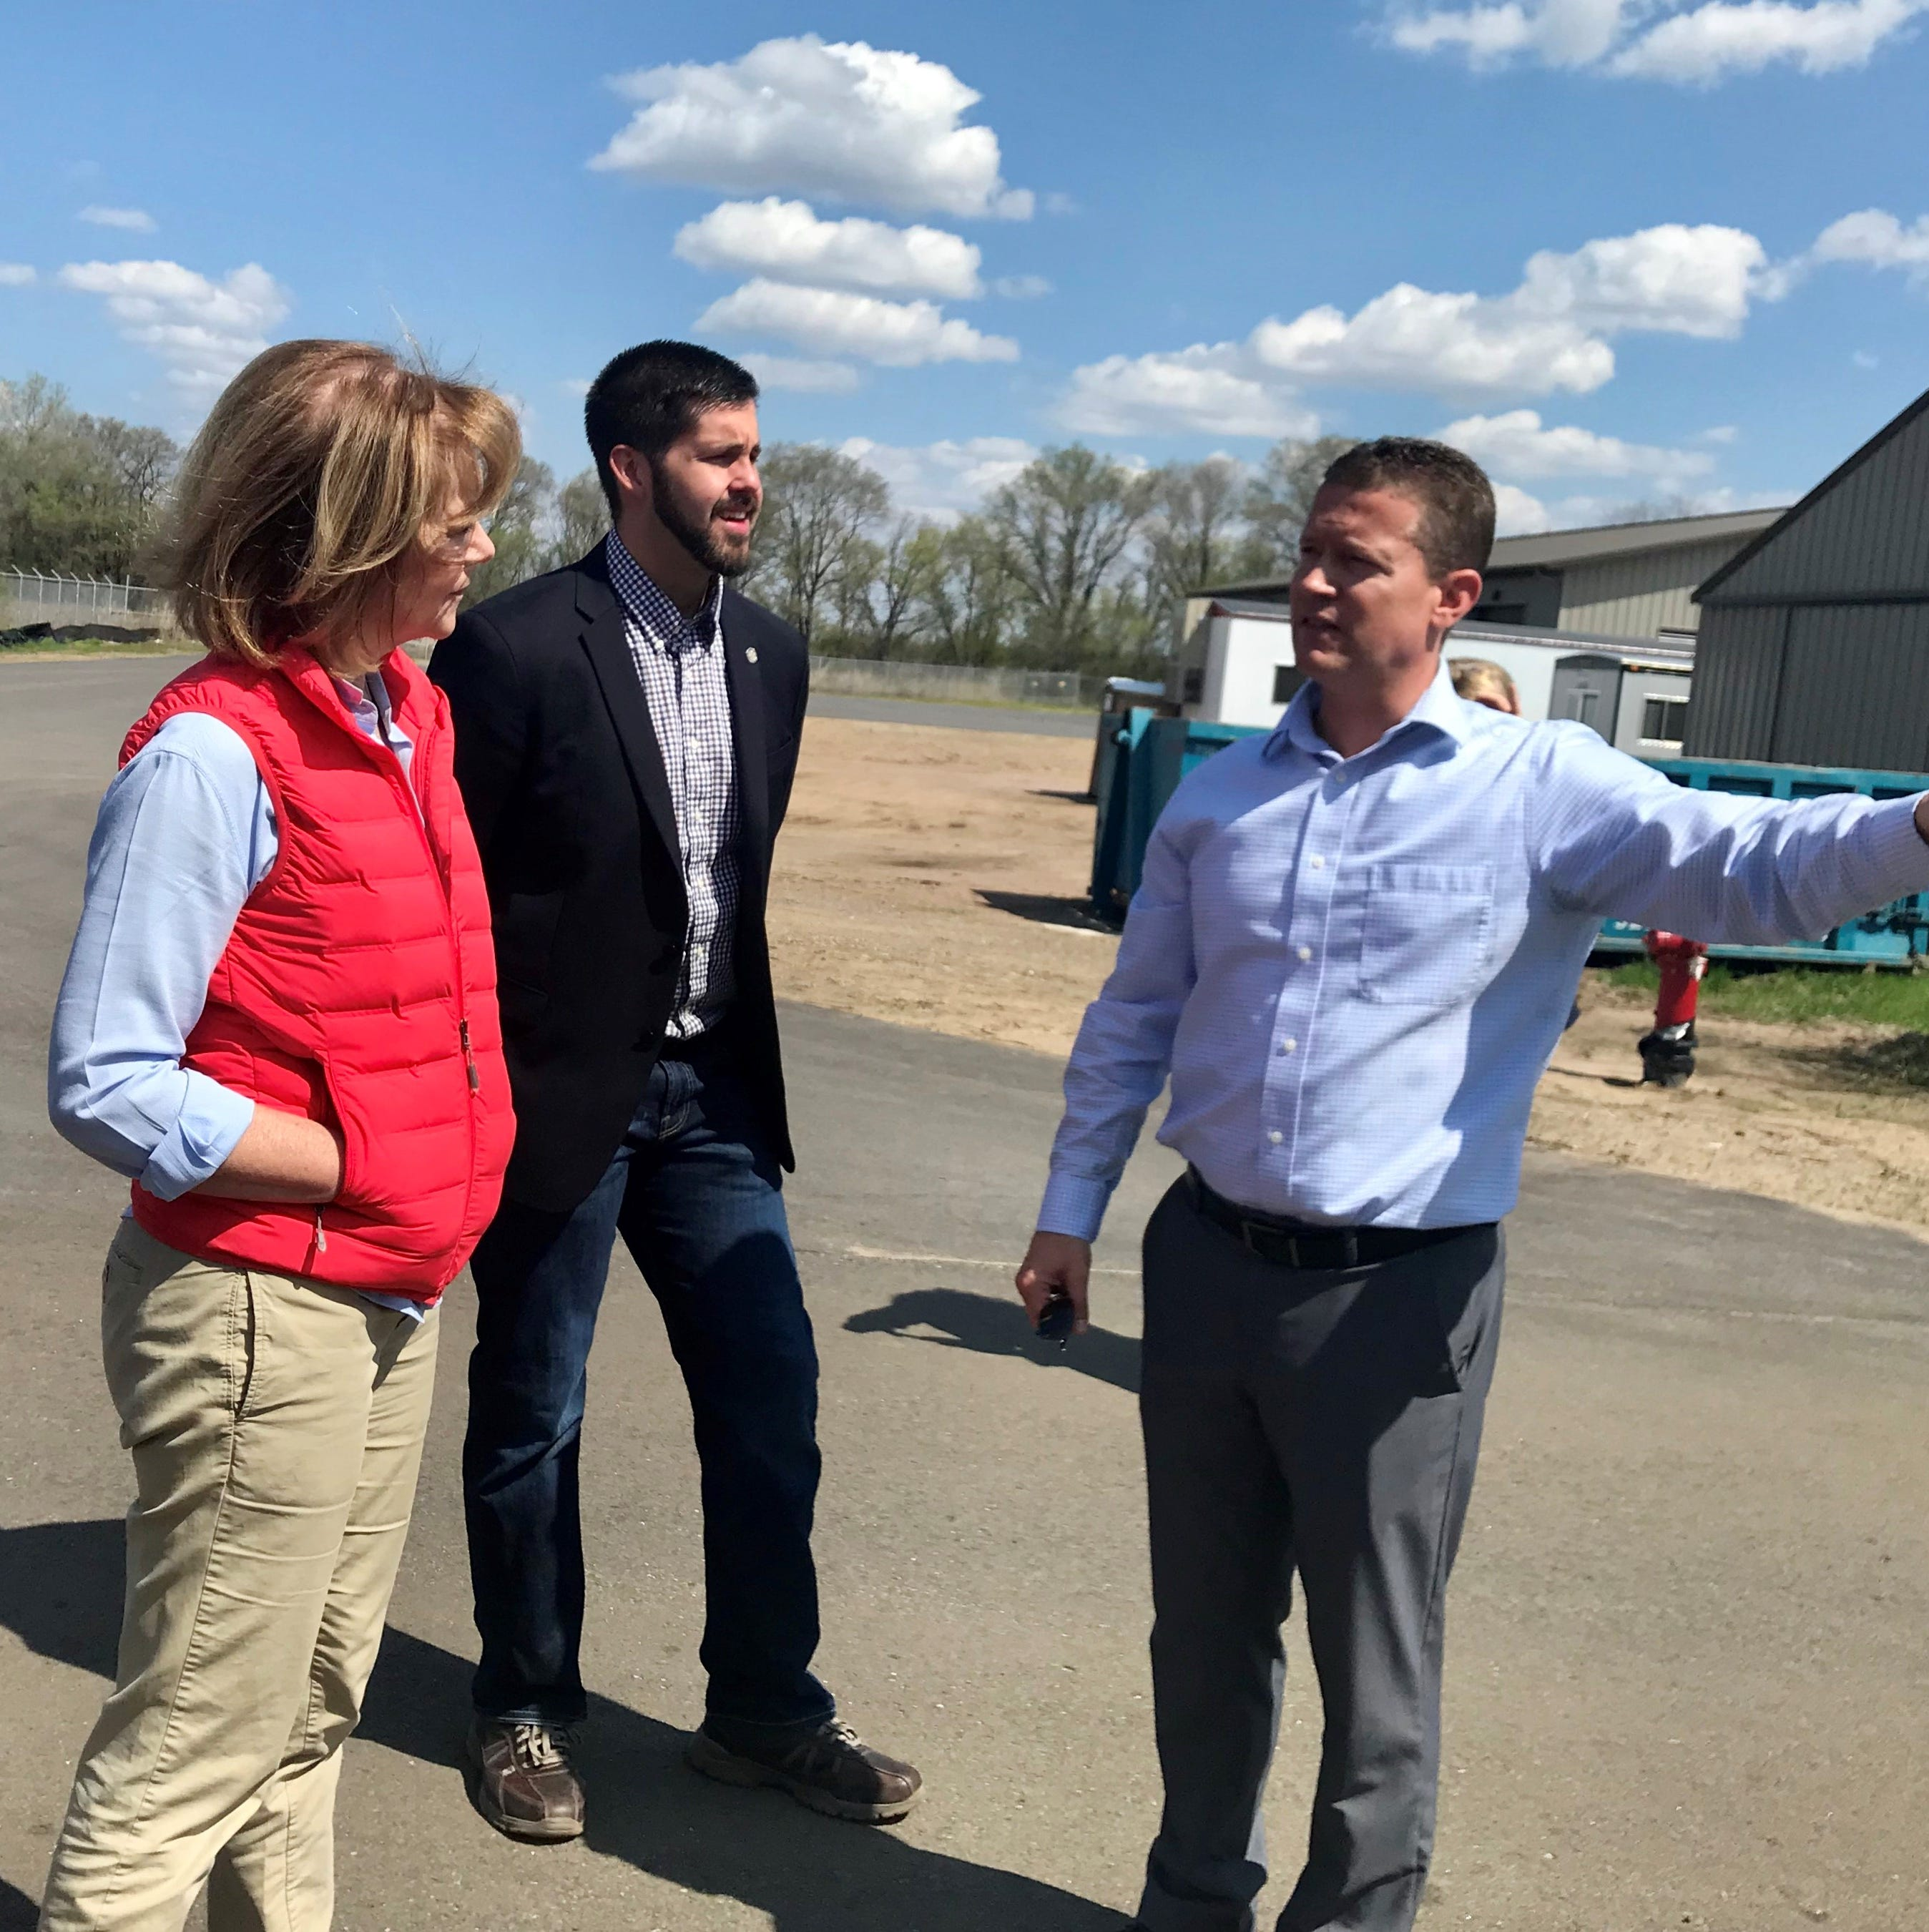 Sen. Tina Smith visits St. Cloud to tour wastewater facility, promote Clean Energy Standard Act